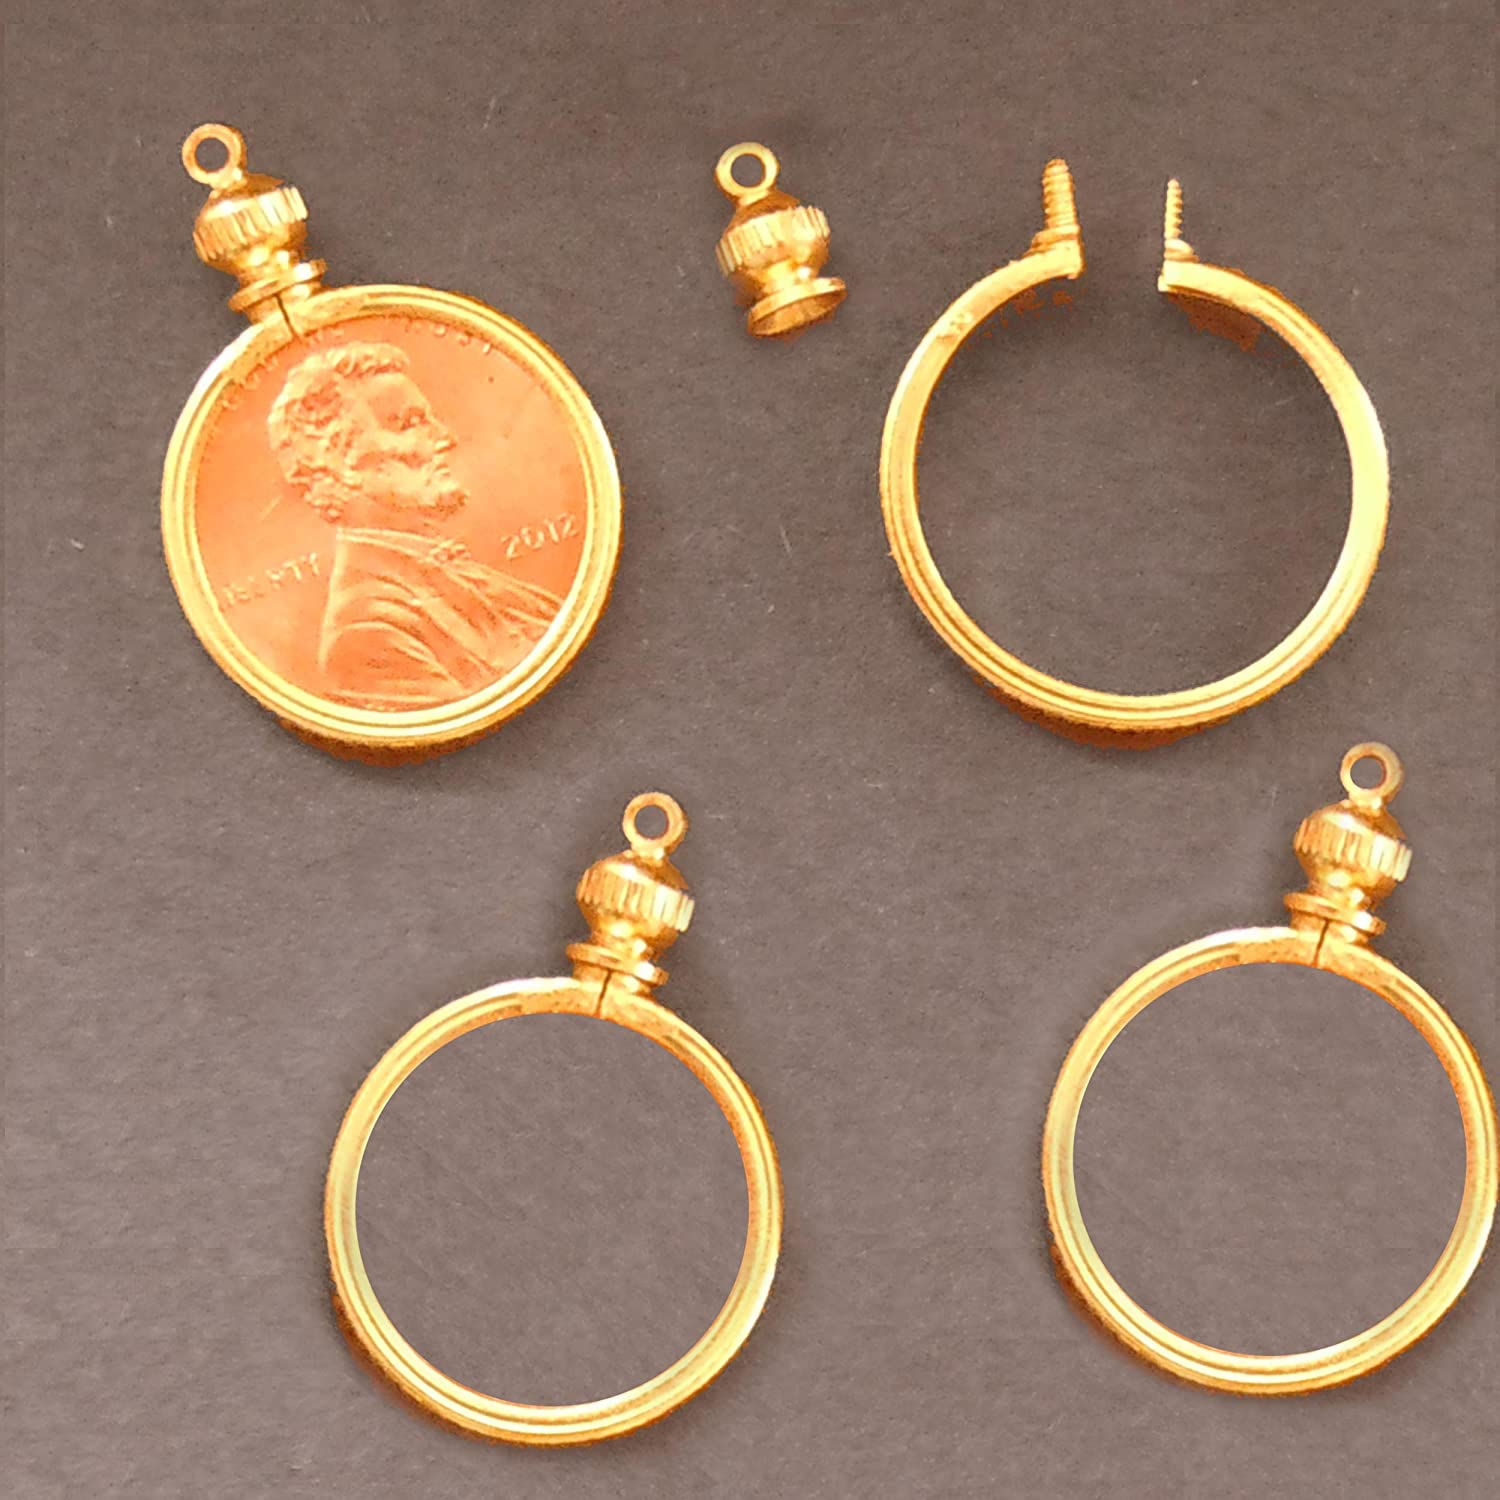 Amazon 1 cent usa penny coin holder bezel gold tone for amazon 1 cent usa penny coin holder bezel gold tone for charm necklace pendant display pack of 4 toys games publicscrutiny Images